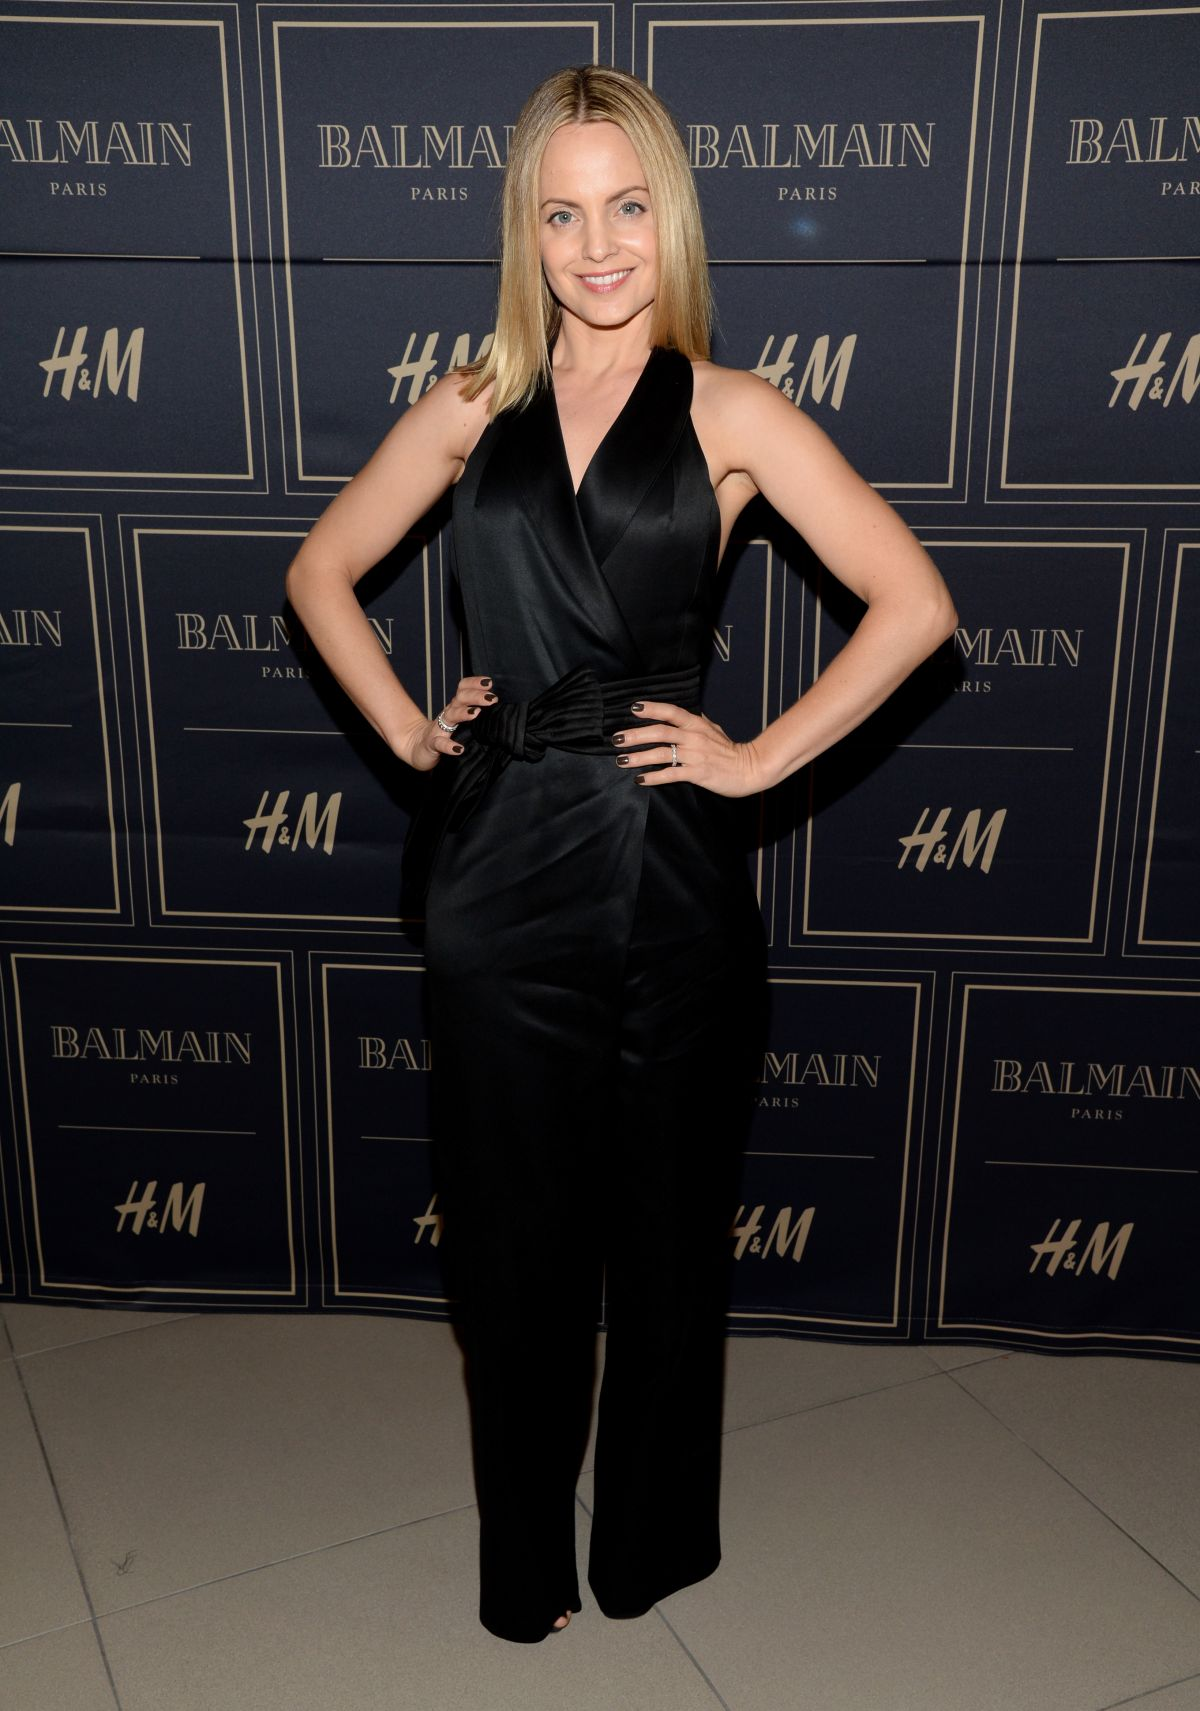 MENA SUVARI at Balmain x H&M Los Angeles VIP Pre-launch in West Hollywood 11/04/2015